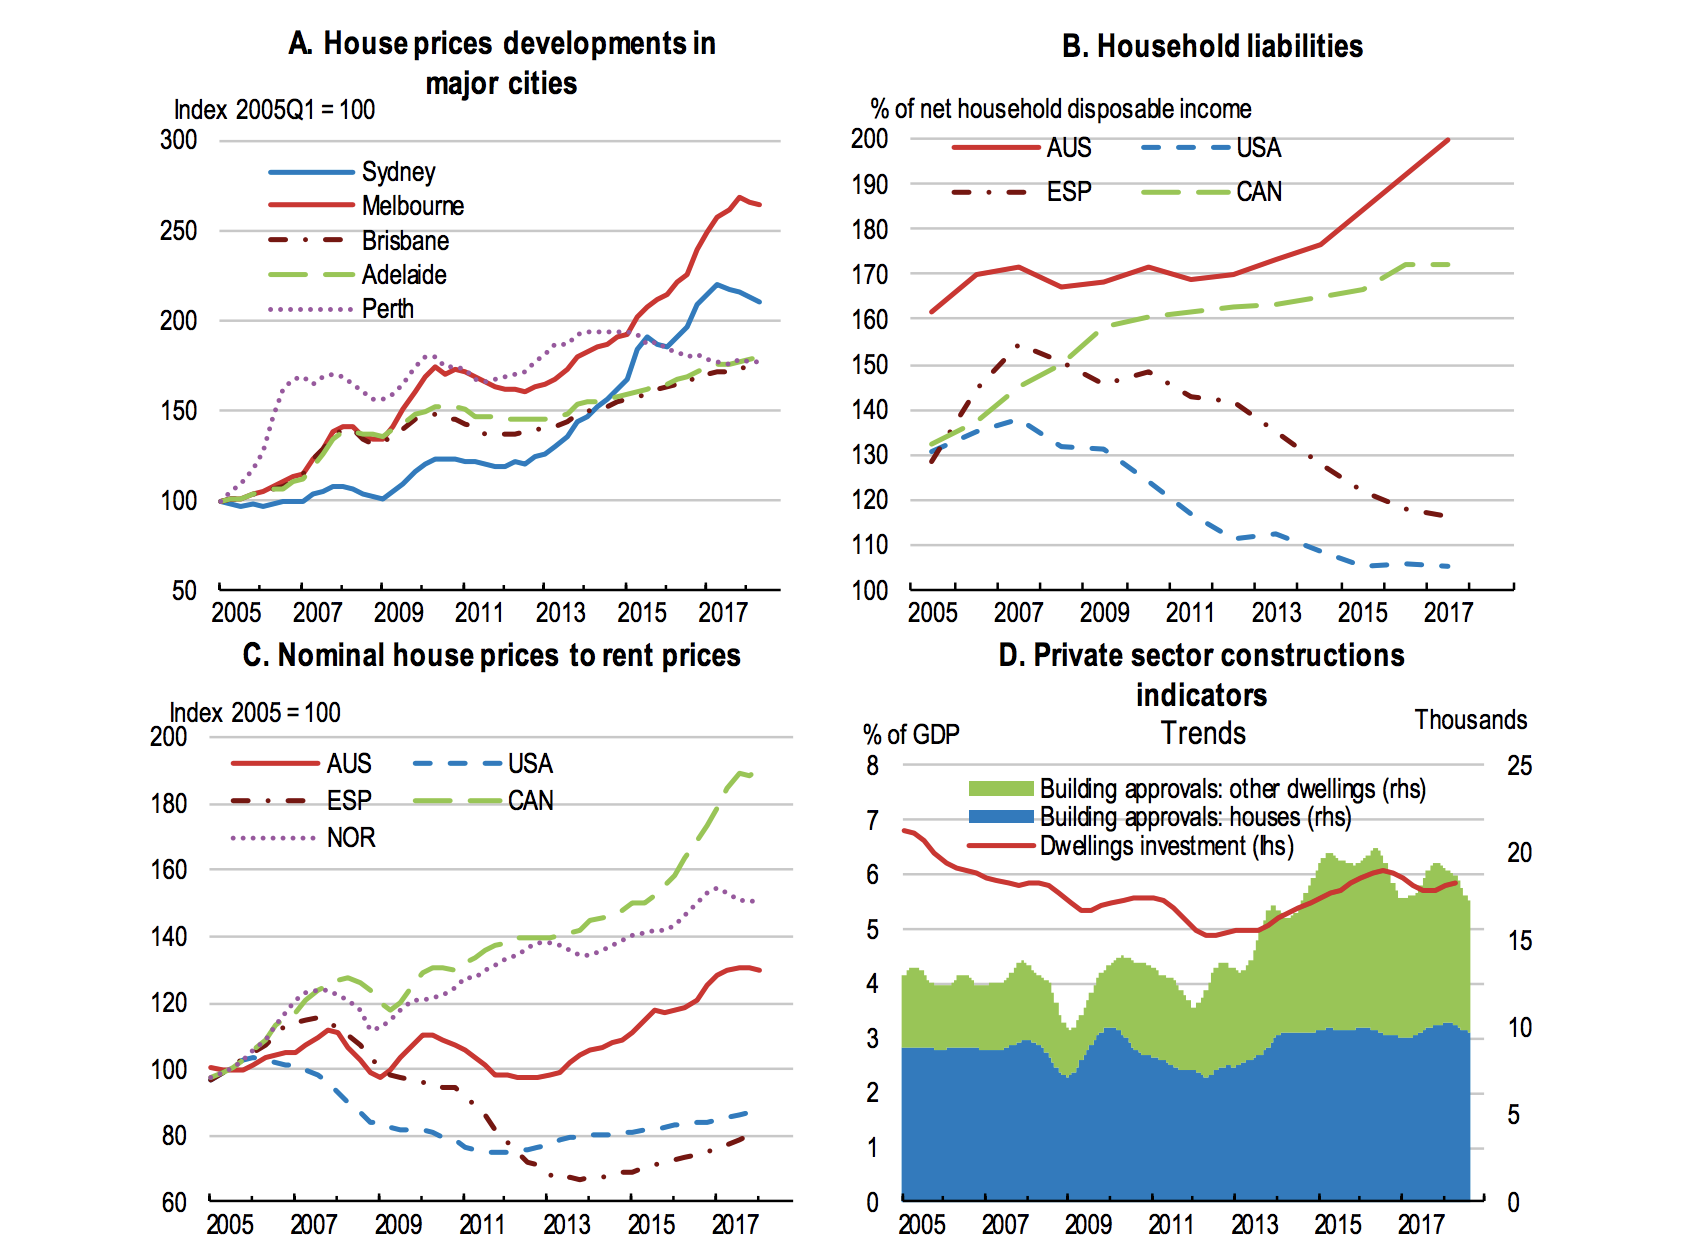 House prices are easing but the household-debt burden continues to rise